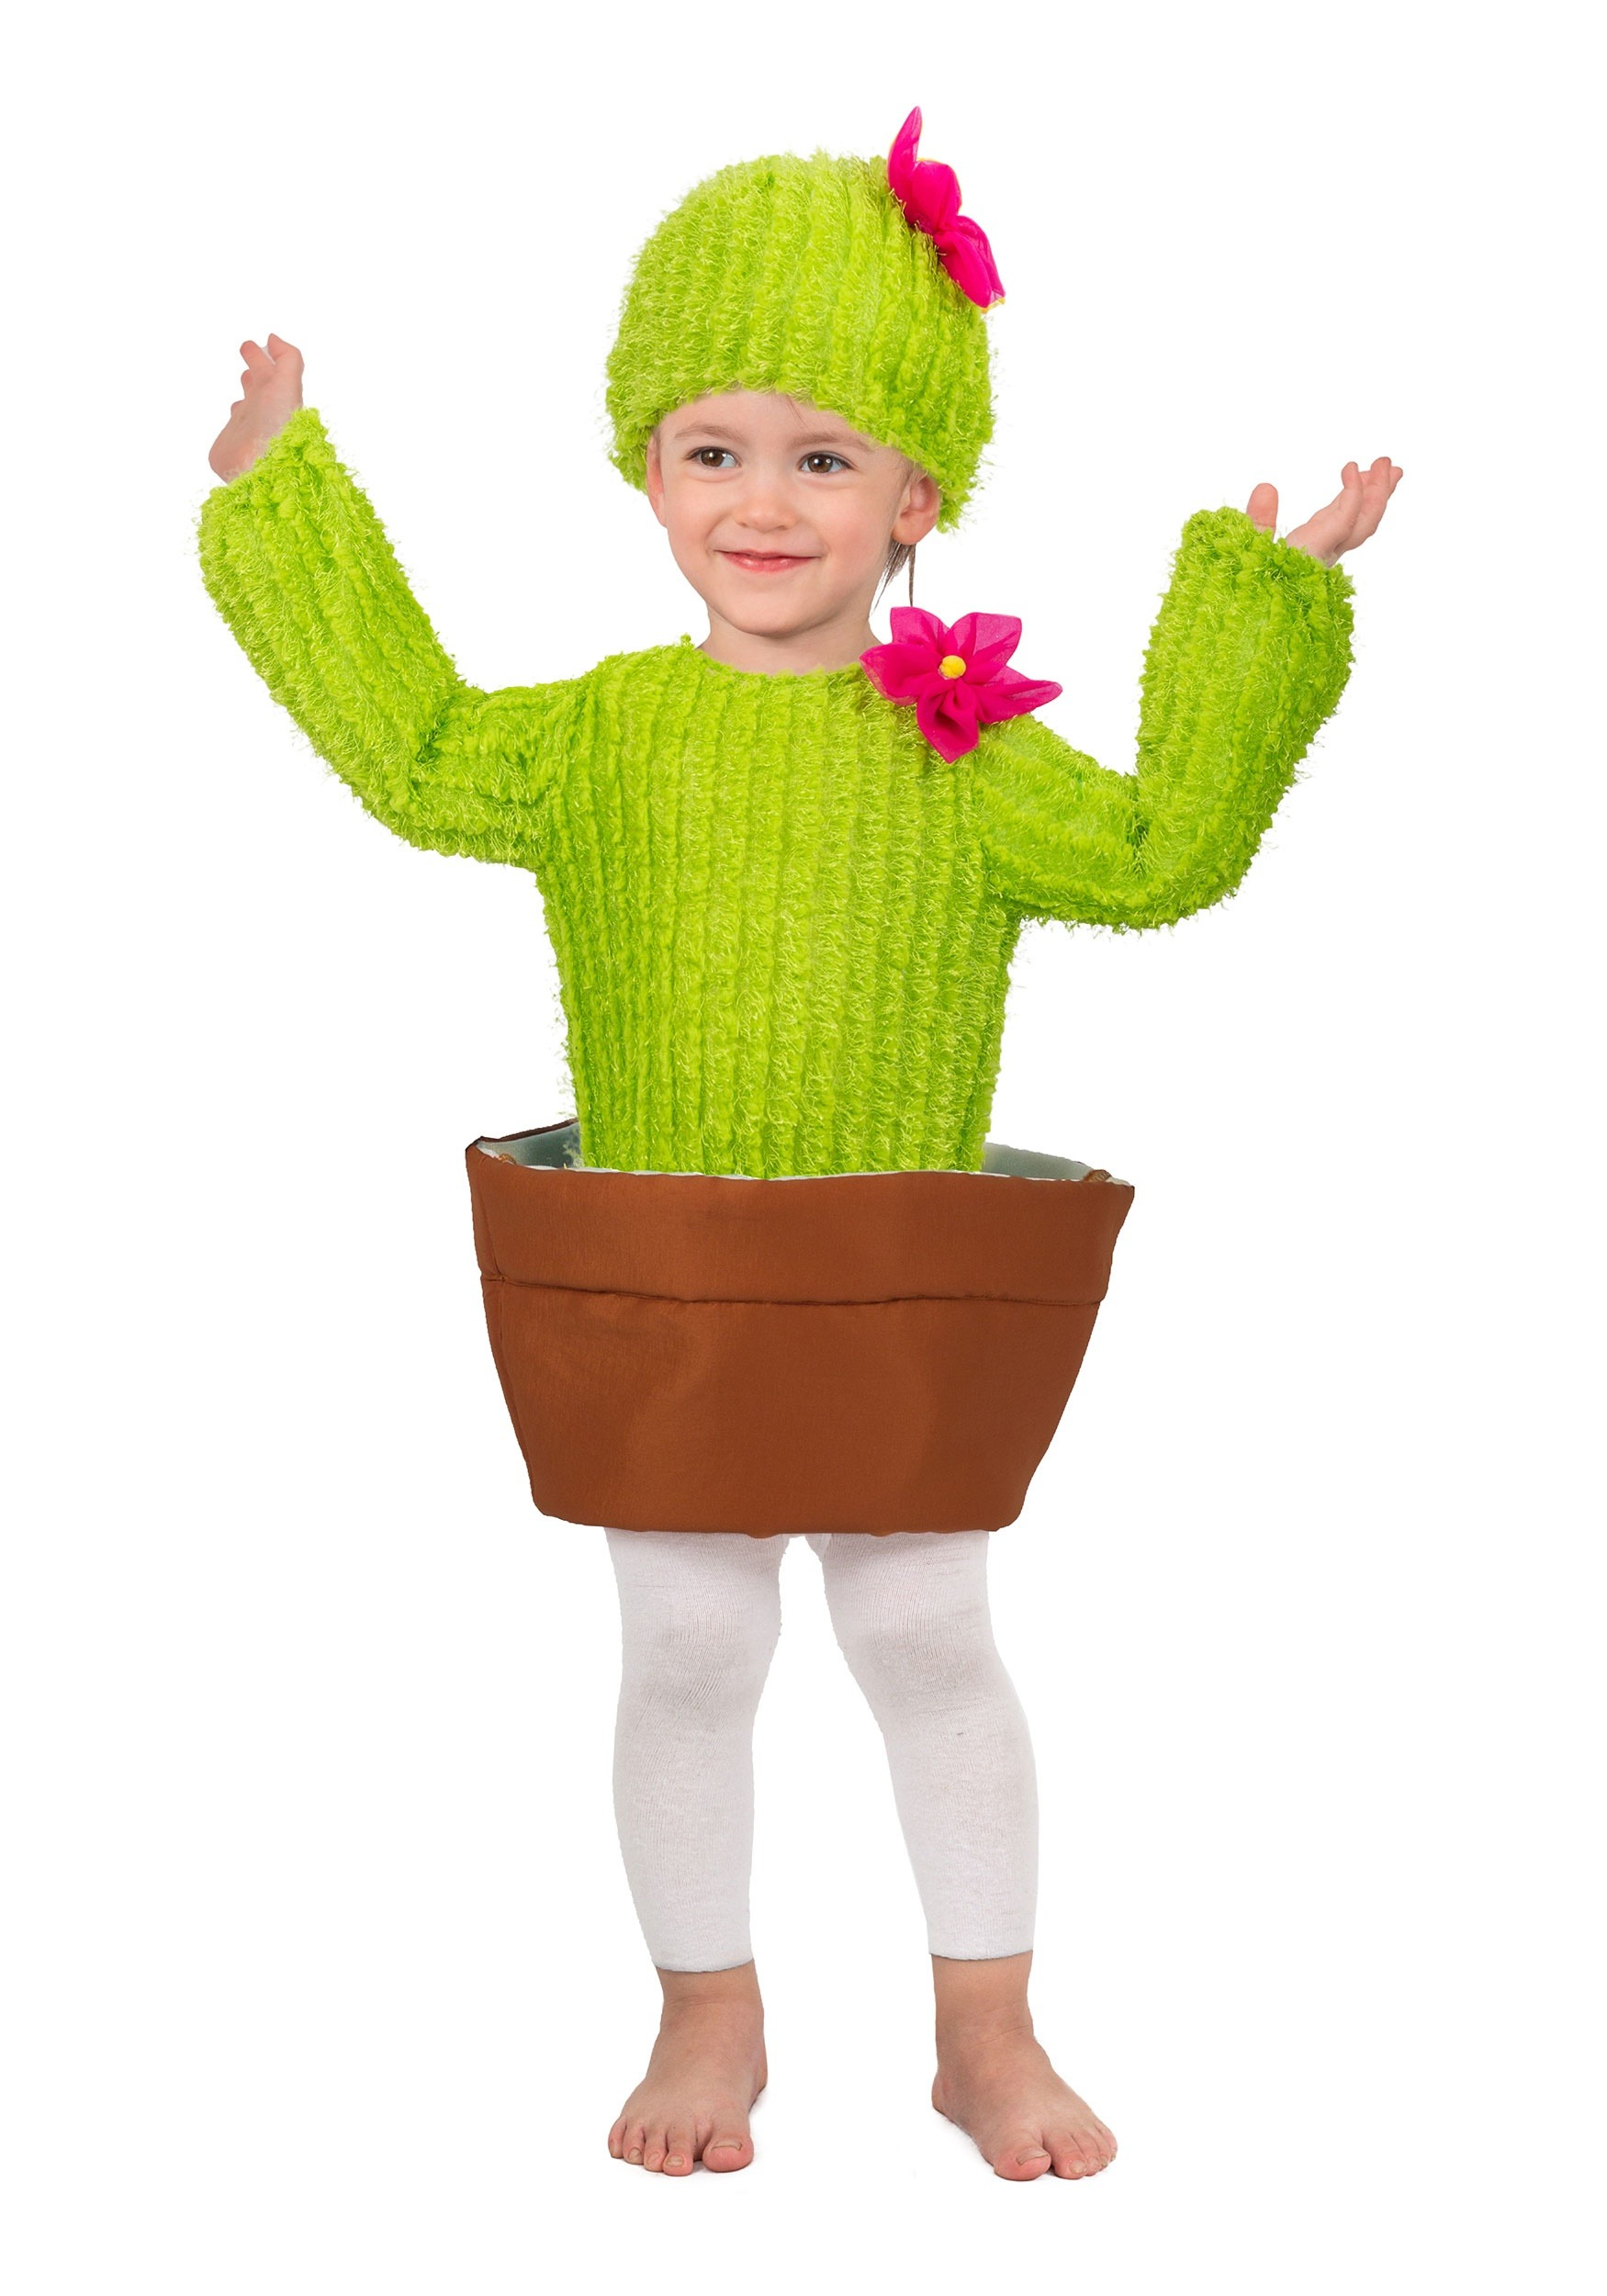 Prickles the Cactus Costume for a Child 7a397c2db237